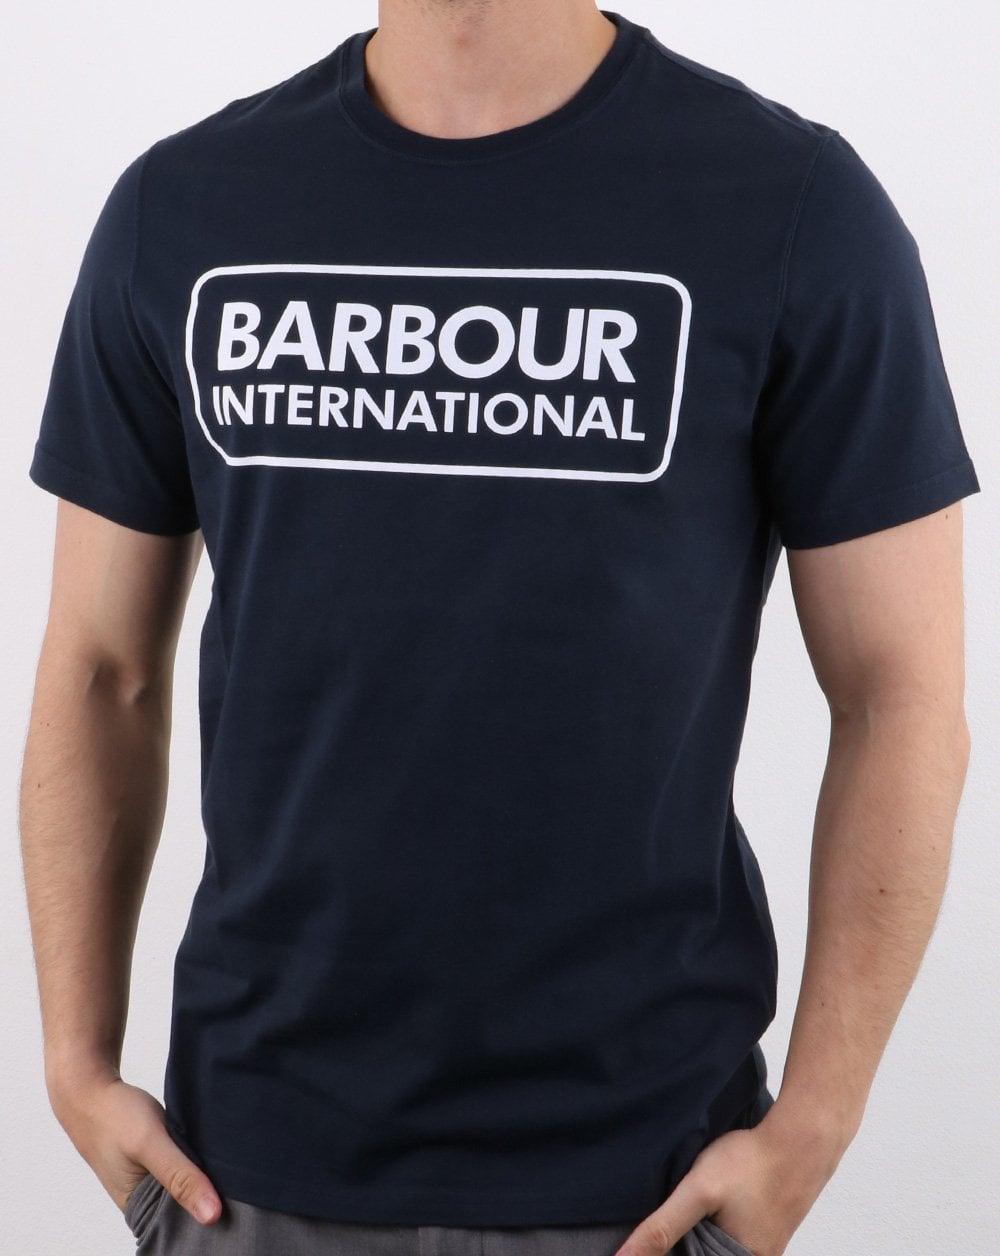 famous brand authentic 50% off Barbour International Essential Logo T-shirt Navy/white